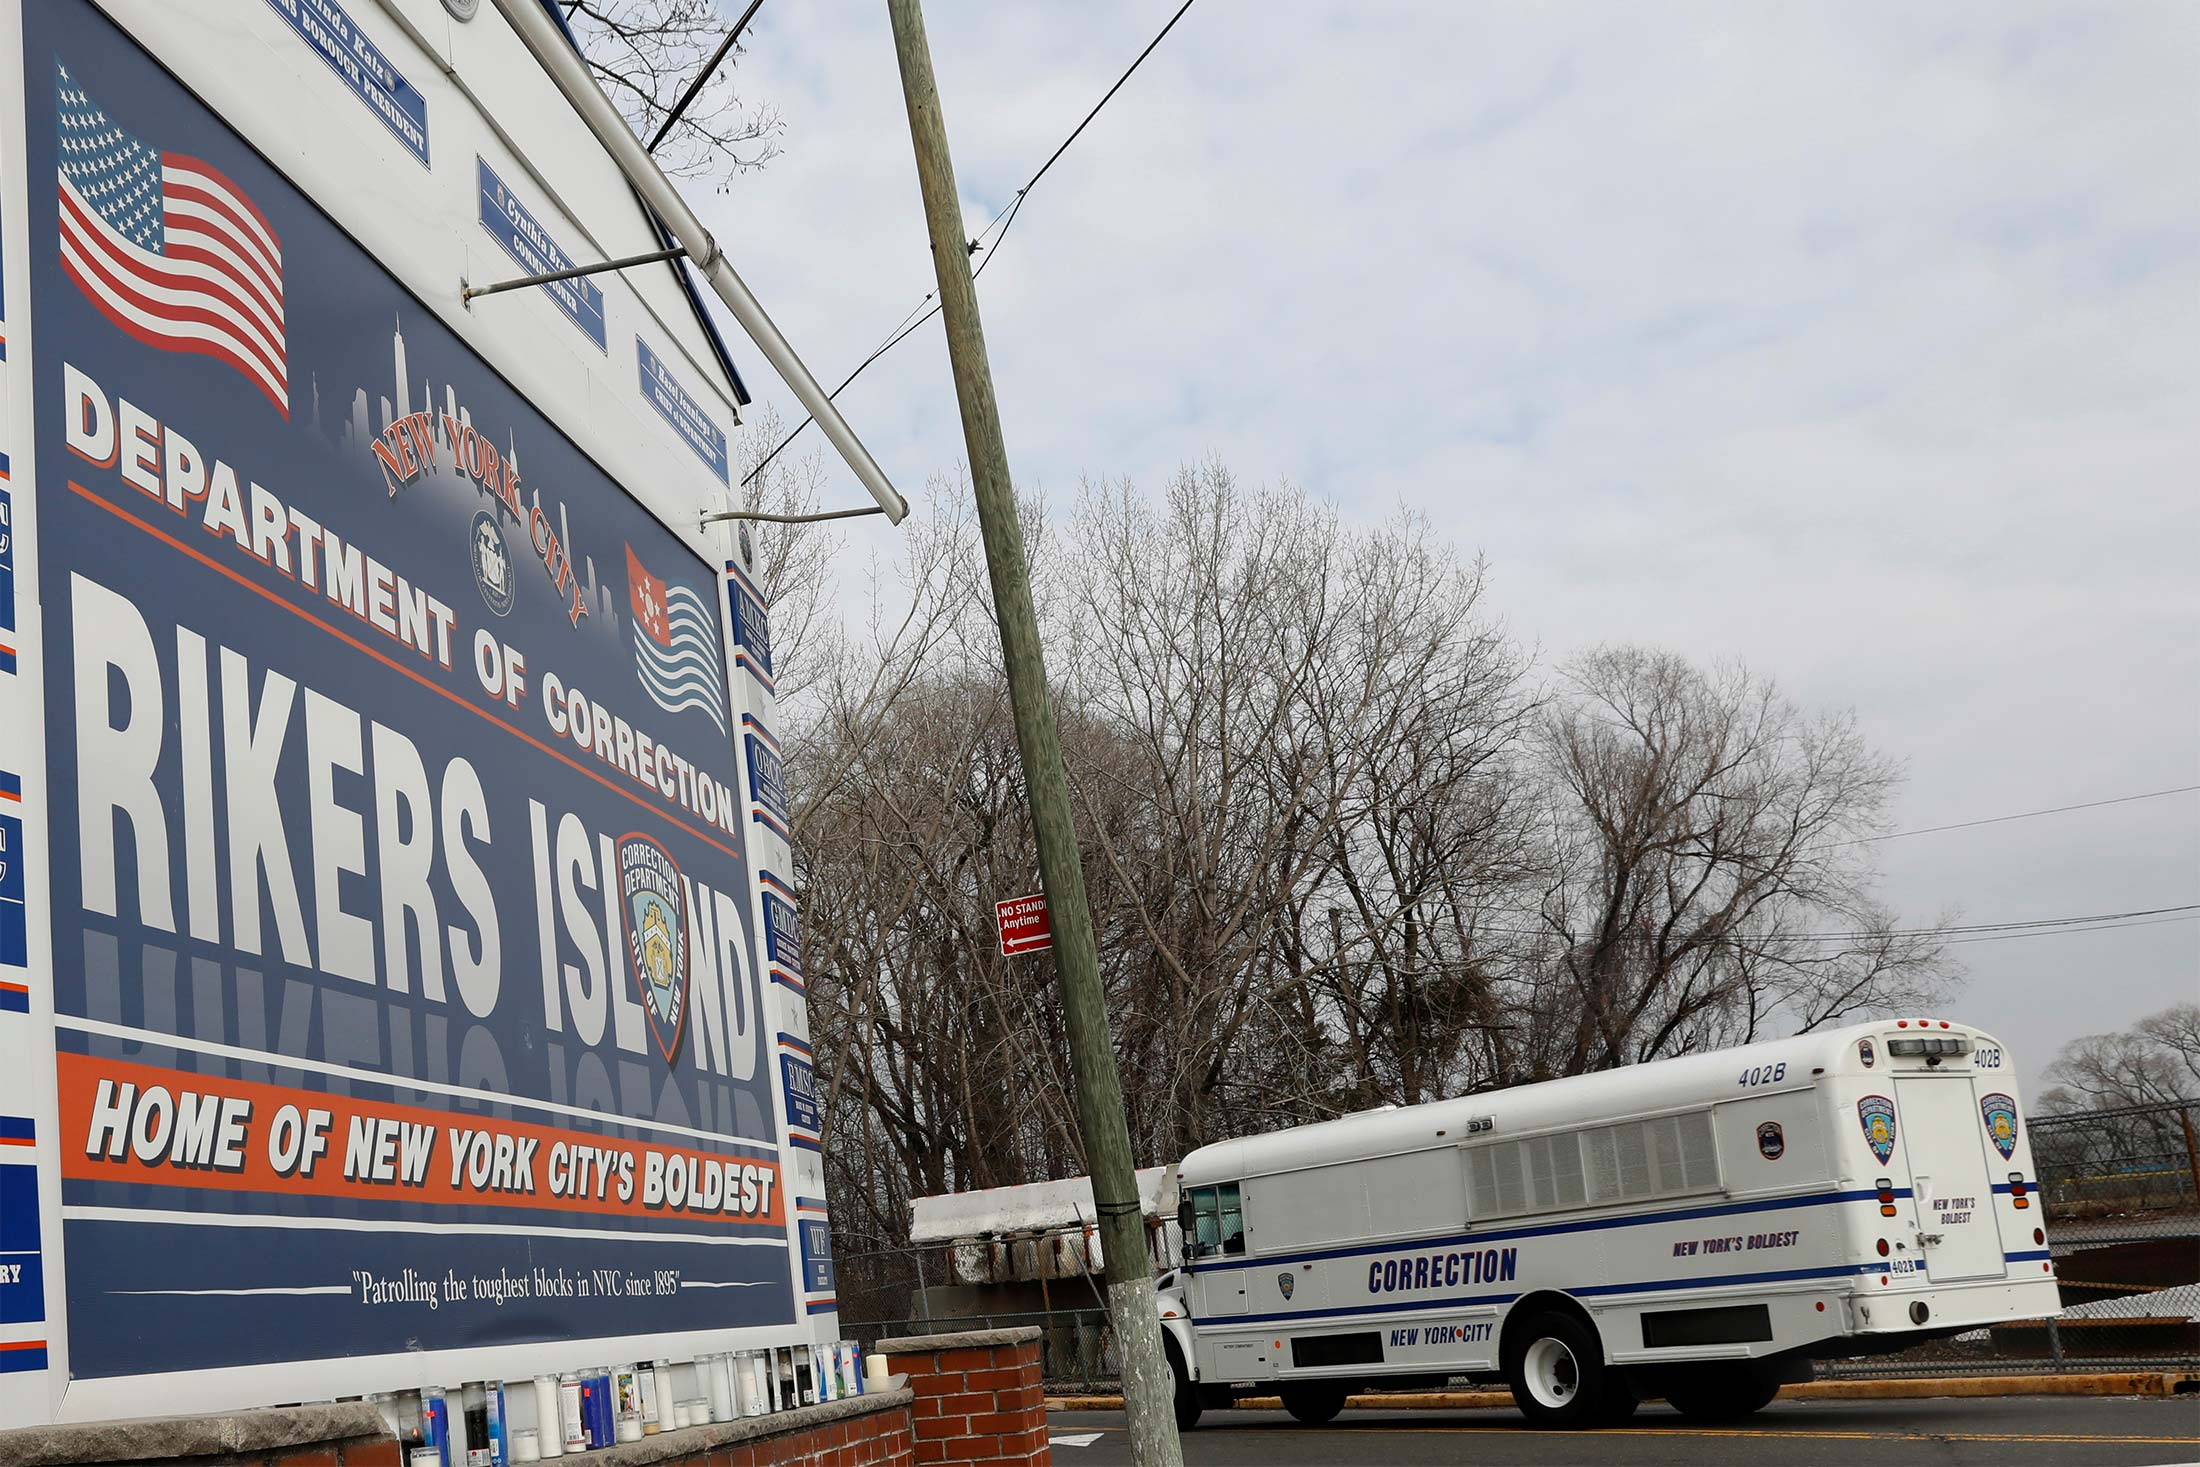 A white bus with the word CORRECTION on it in large letters drives past a Rikers Island sign.